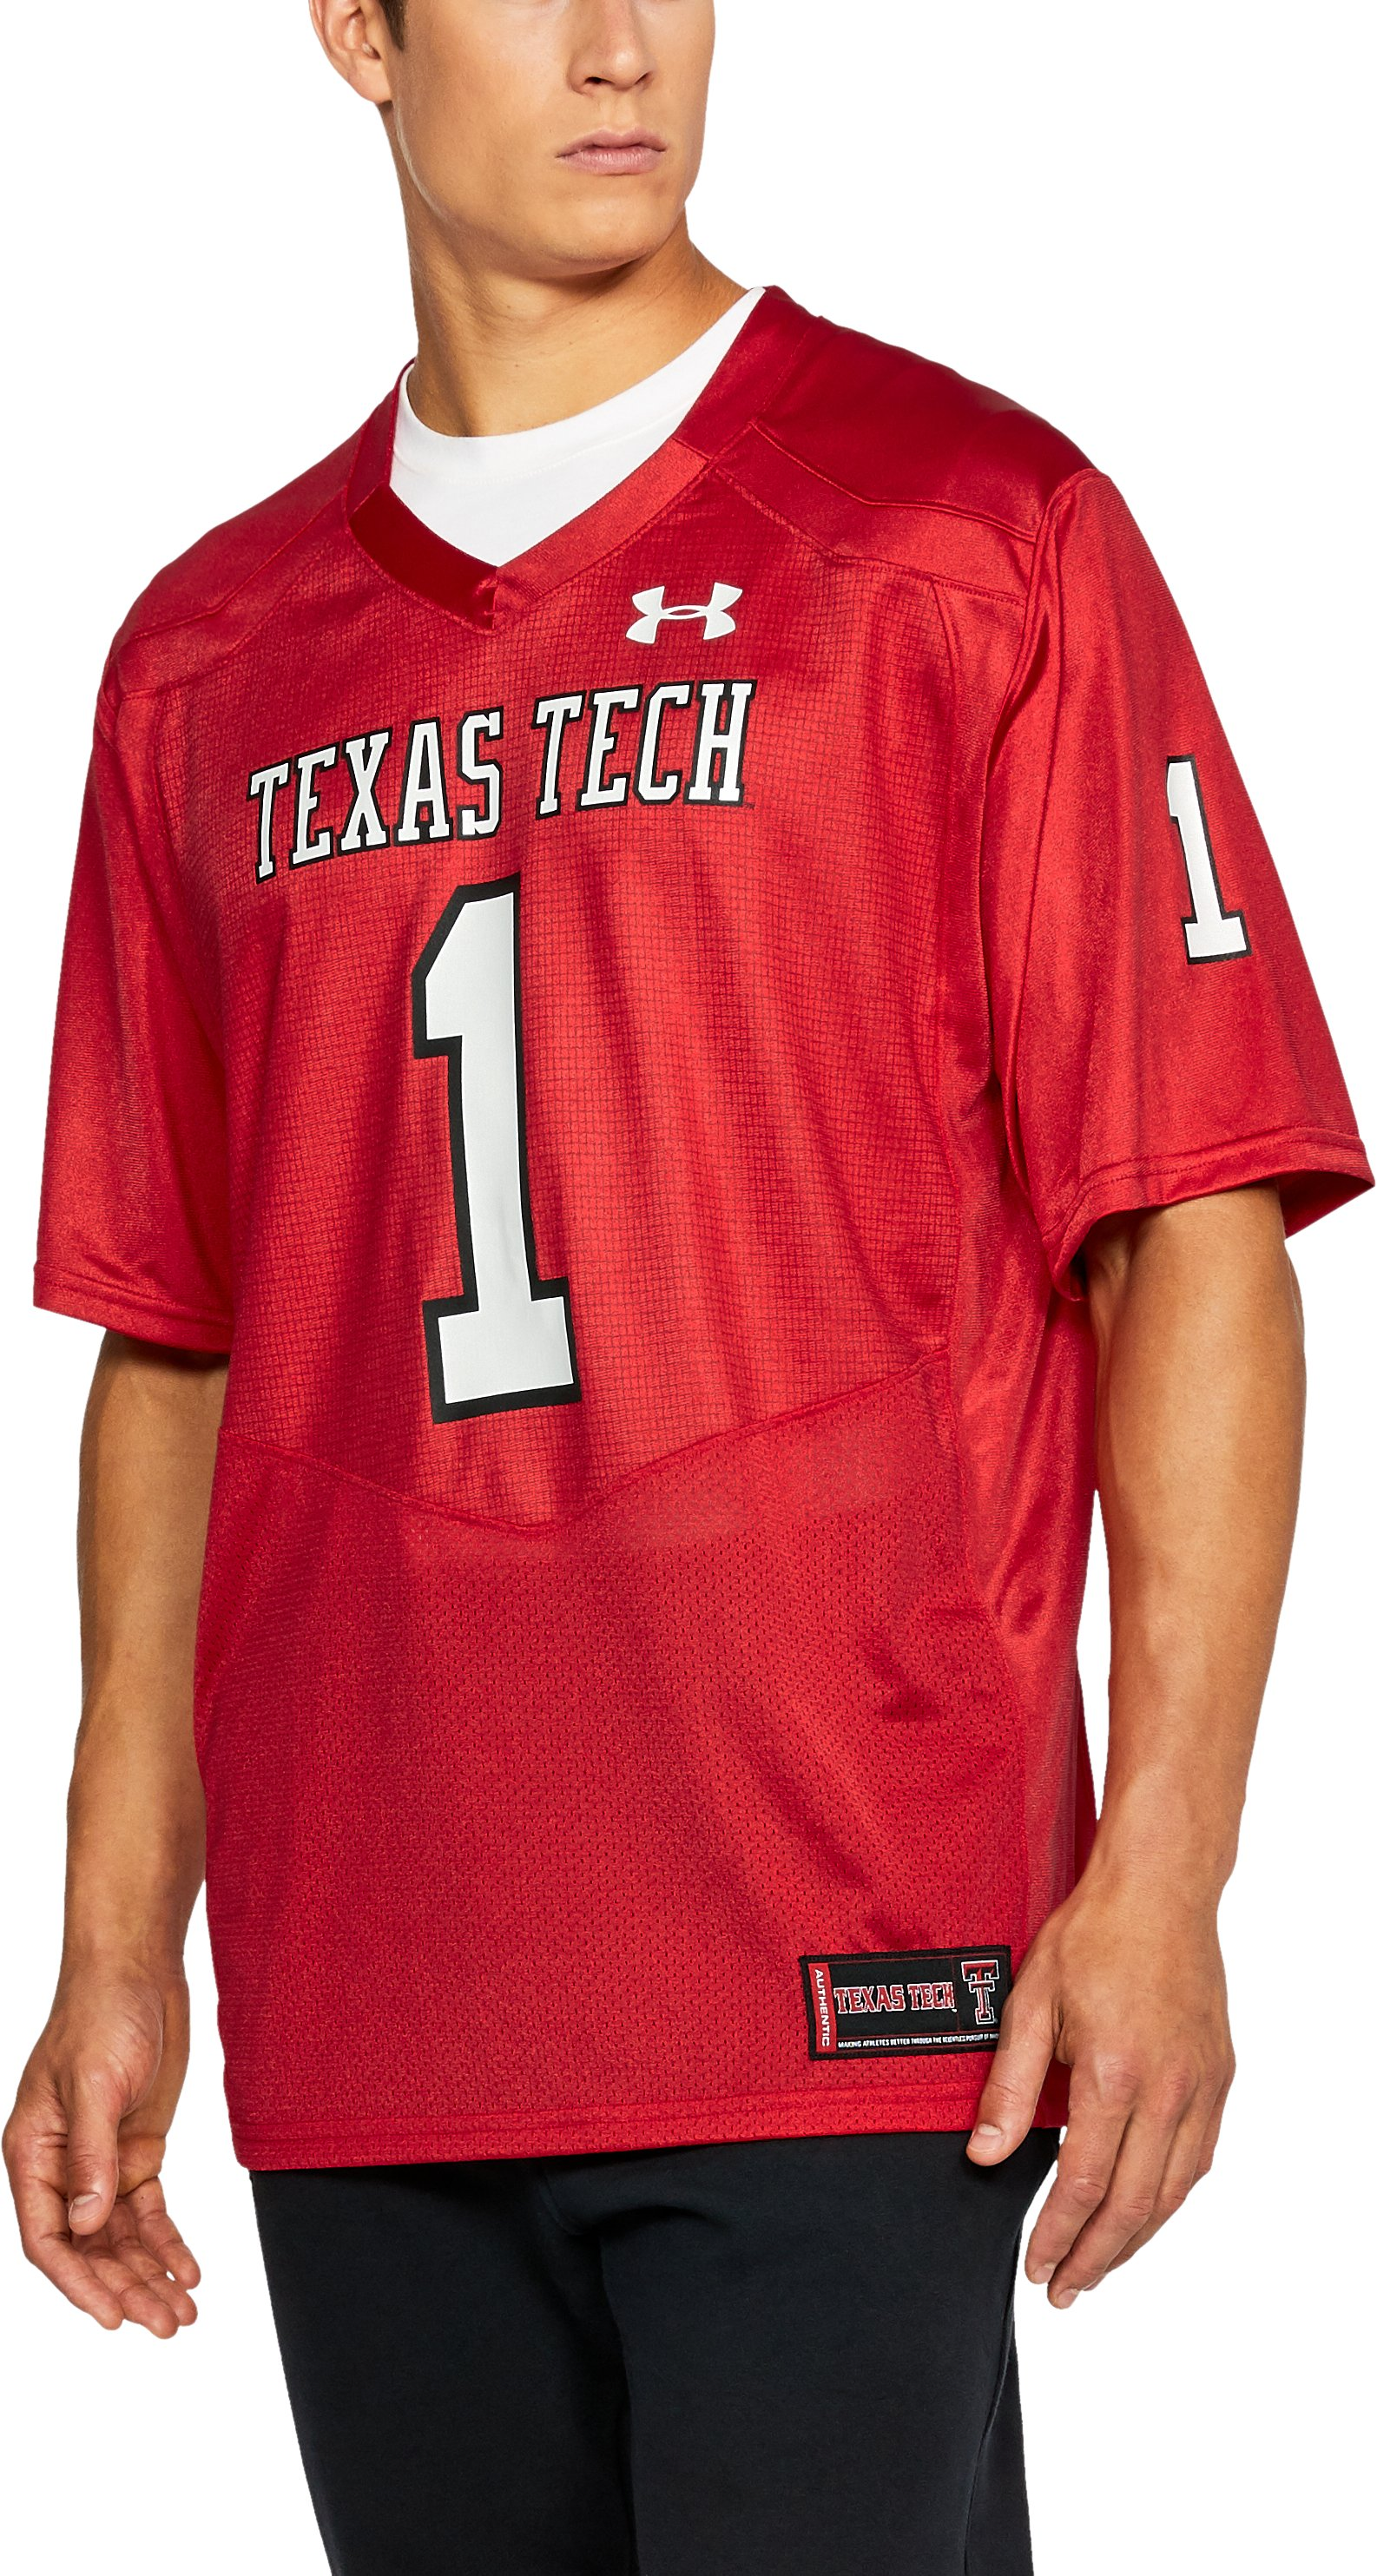 Men's Texas Tech Replica Jersey, Red